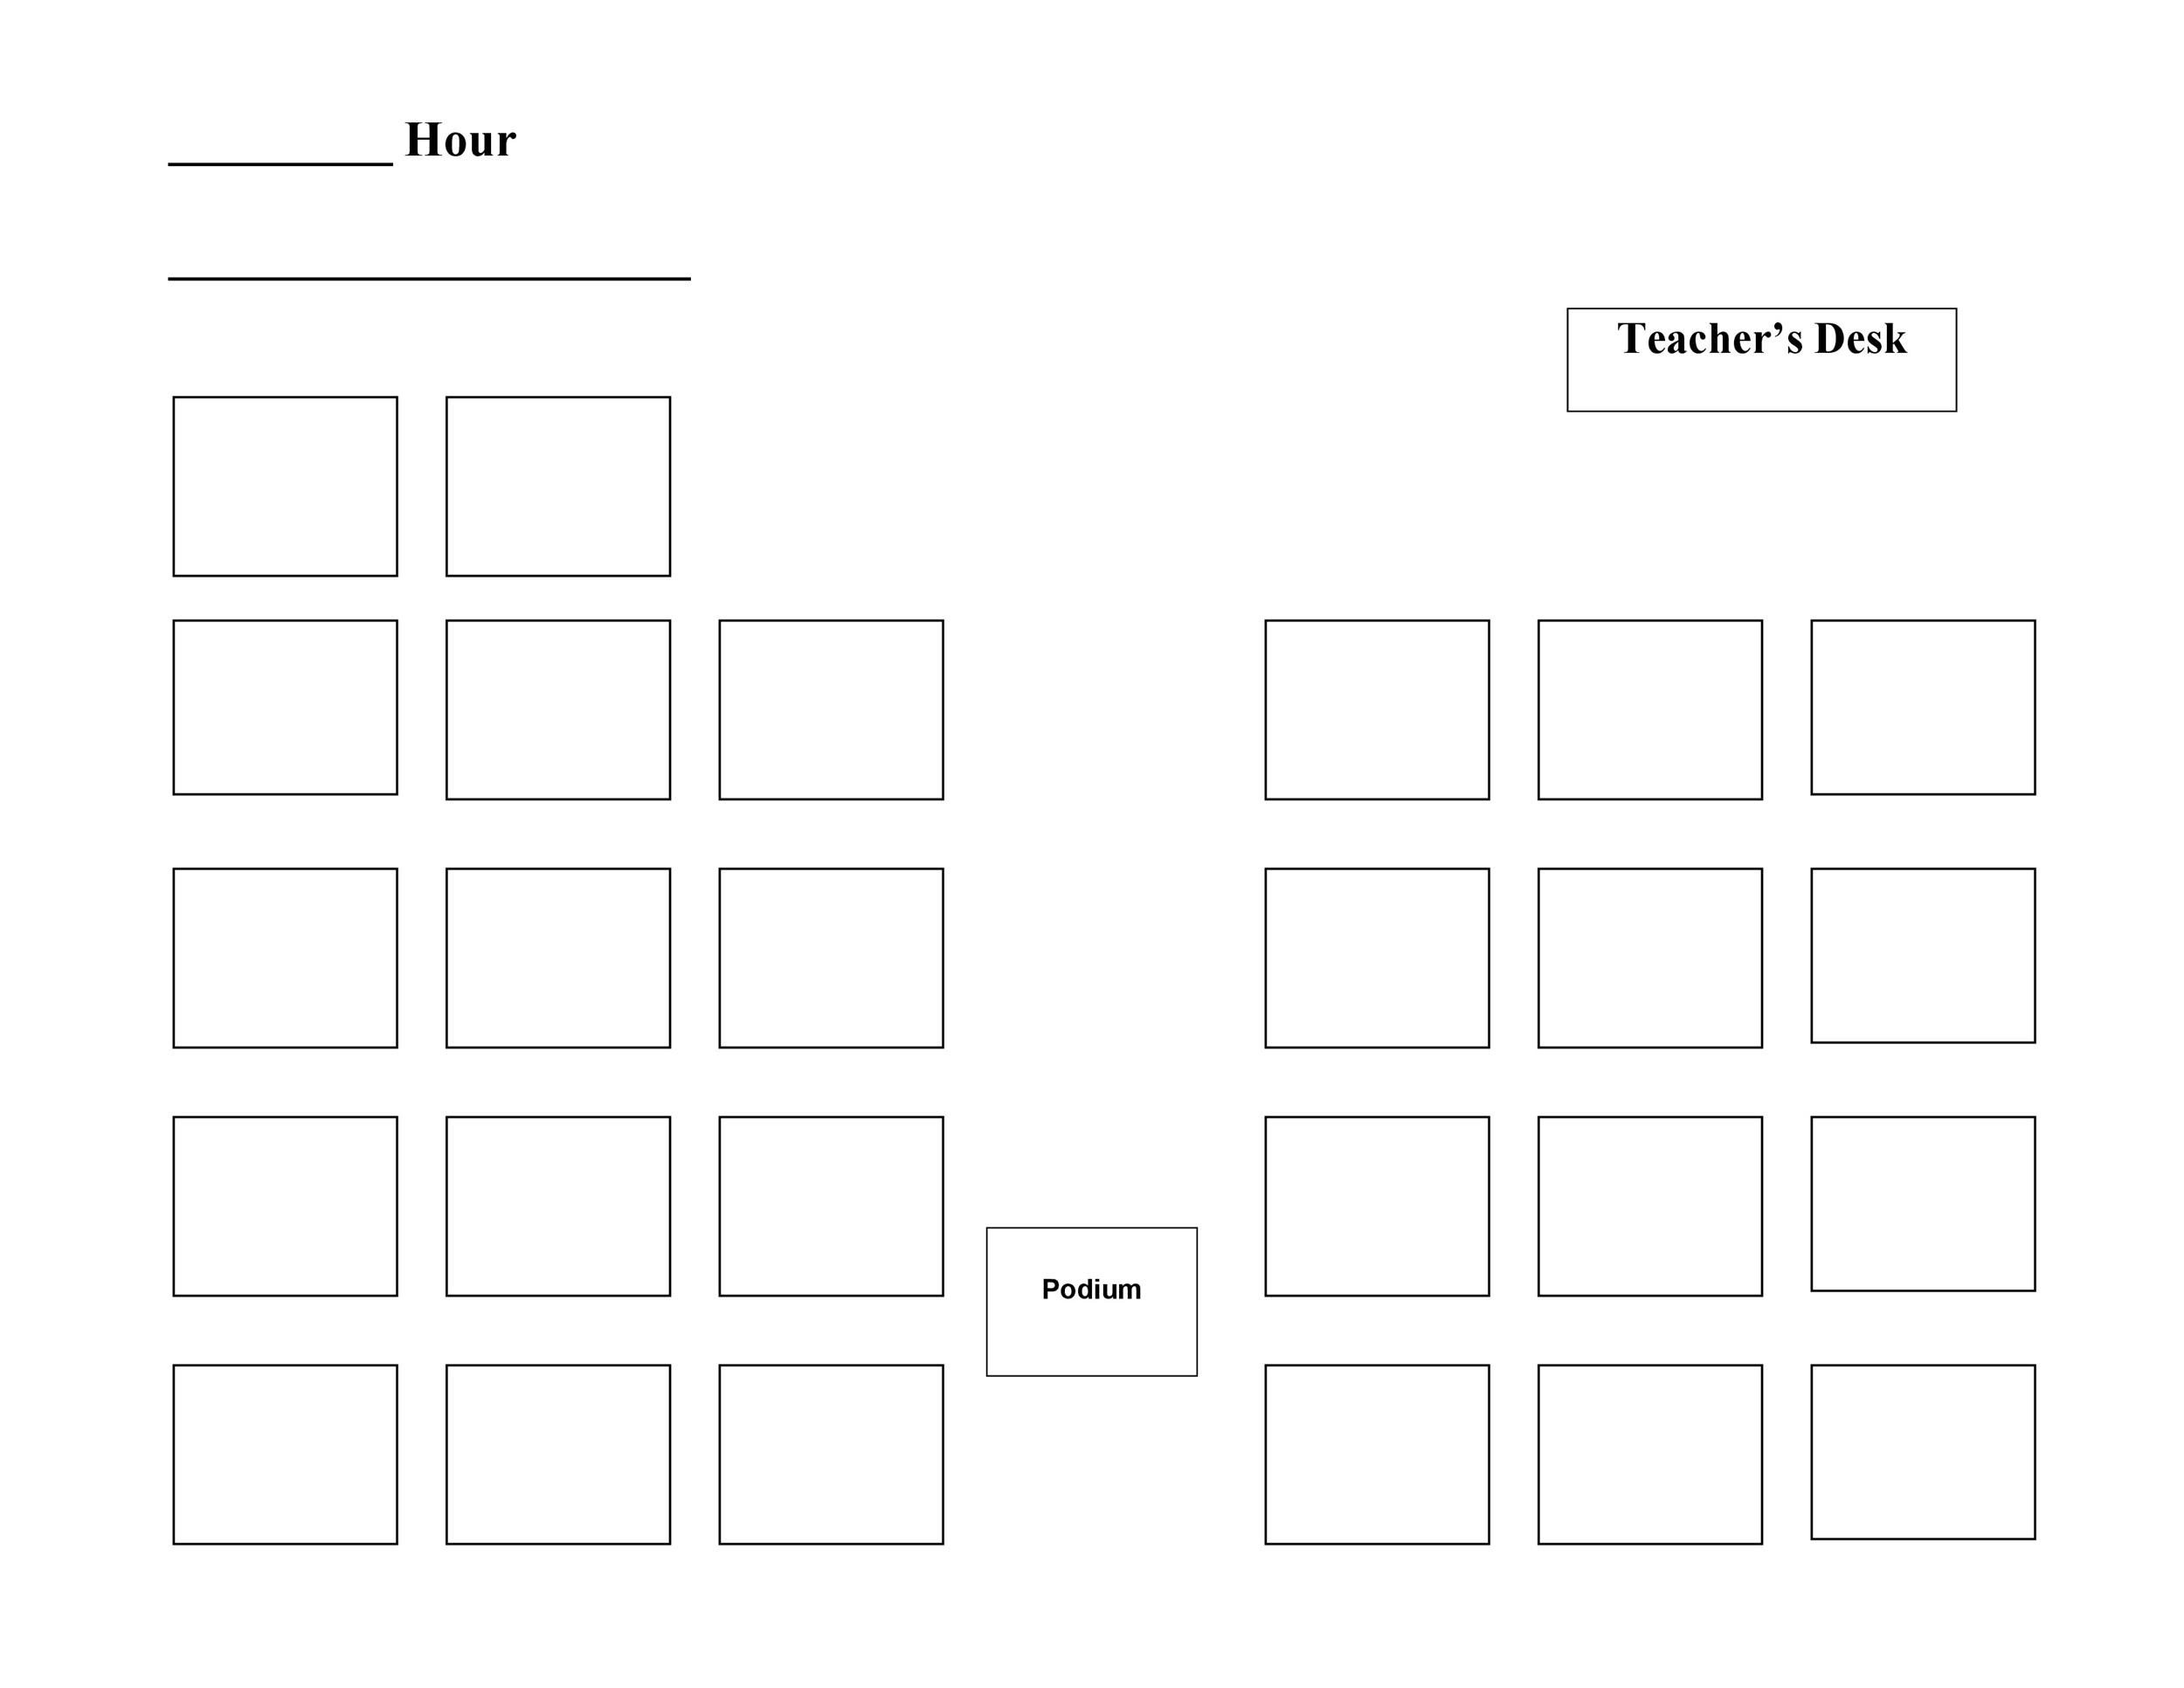 40+ Great Seating Chart Templates (wedding, Classroom + More. Make Your Own Presentation Template. Guided Writing Template. Openoffice Recipe Card Template. Baby Shower Greeting Messages For Twins. Proof Of Income Letter Example Bk0av. How To Write A Covering Letter For A Job. Thank You Messages For Attending Baby Shower. Why I Need A Scholarship Essay Template